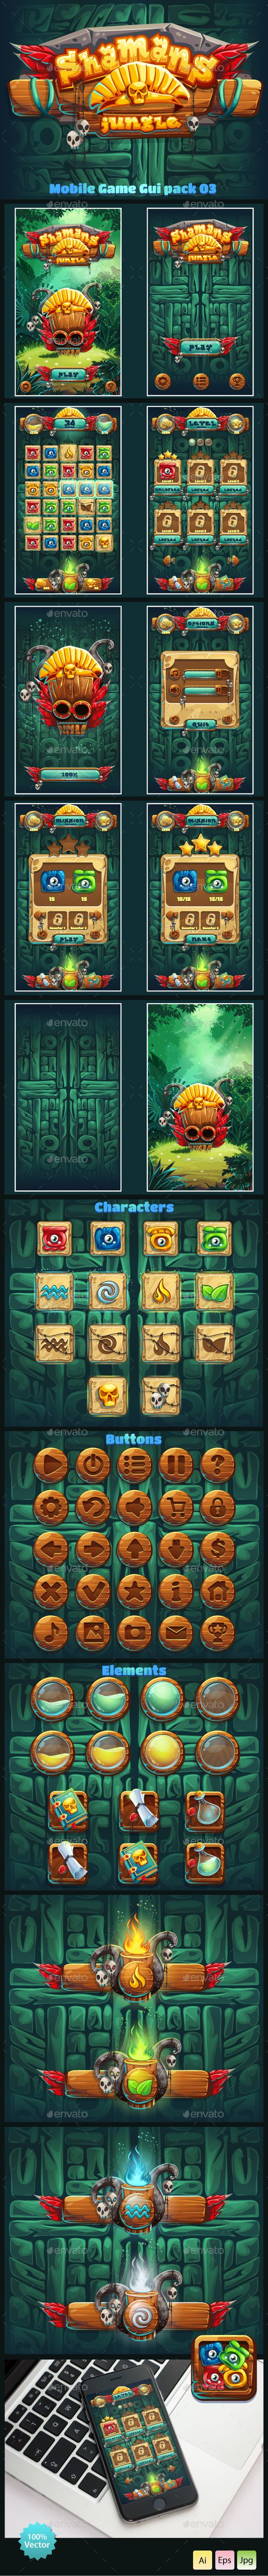 Jungle Shamans Mobile Game UI Template Vector EPS, AI Illustrator. Download here: http://graphicriver.net/item/jungle-shamans-mobile-gui/15358872?ref=ksioks